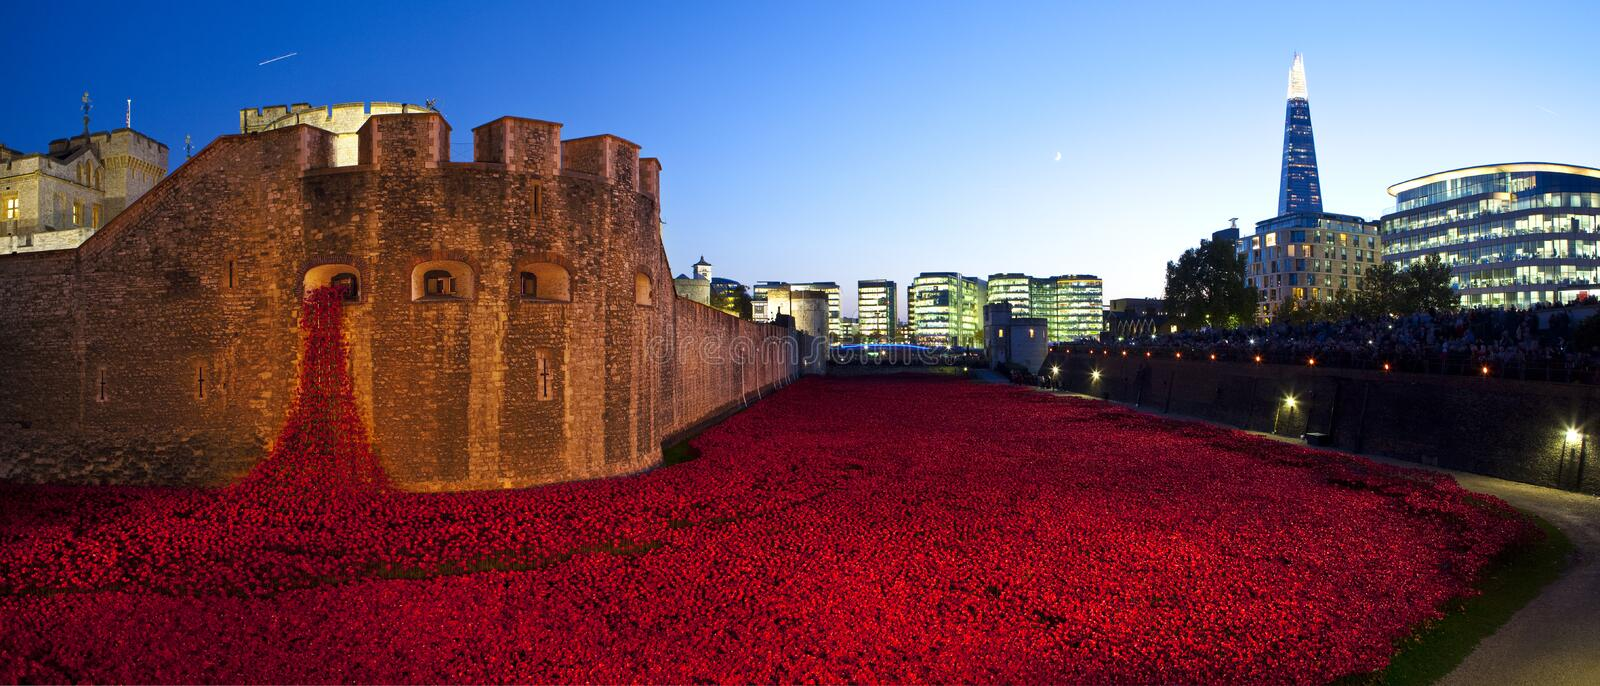 Tower of London and Poppies at Dusk. LONDON, UK - OCTOBER 27TH 2014: A panoramic view of the ceramic Poppies of the 'Blood Swept Lands and Seas of Red' royalty free stock photography